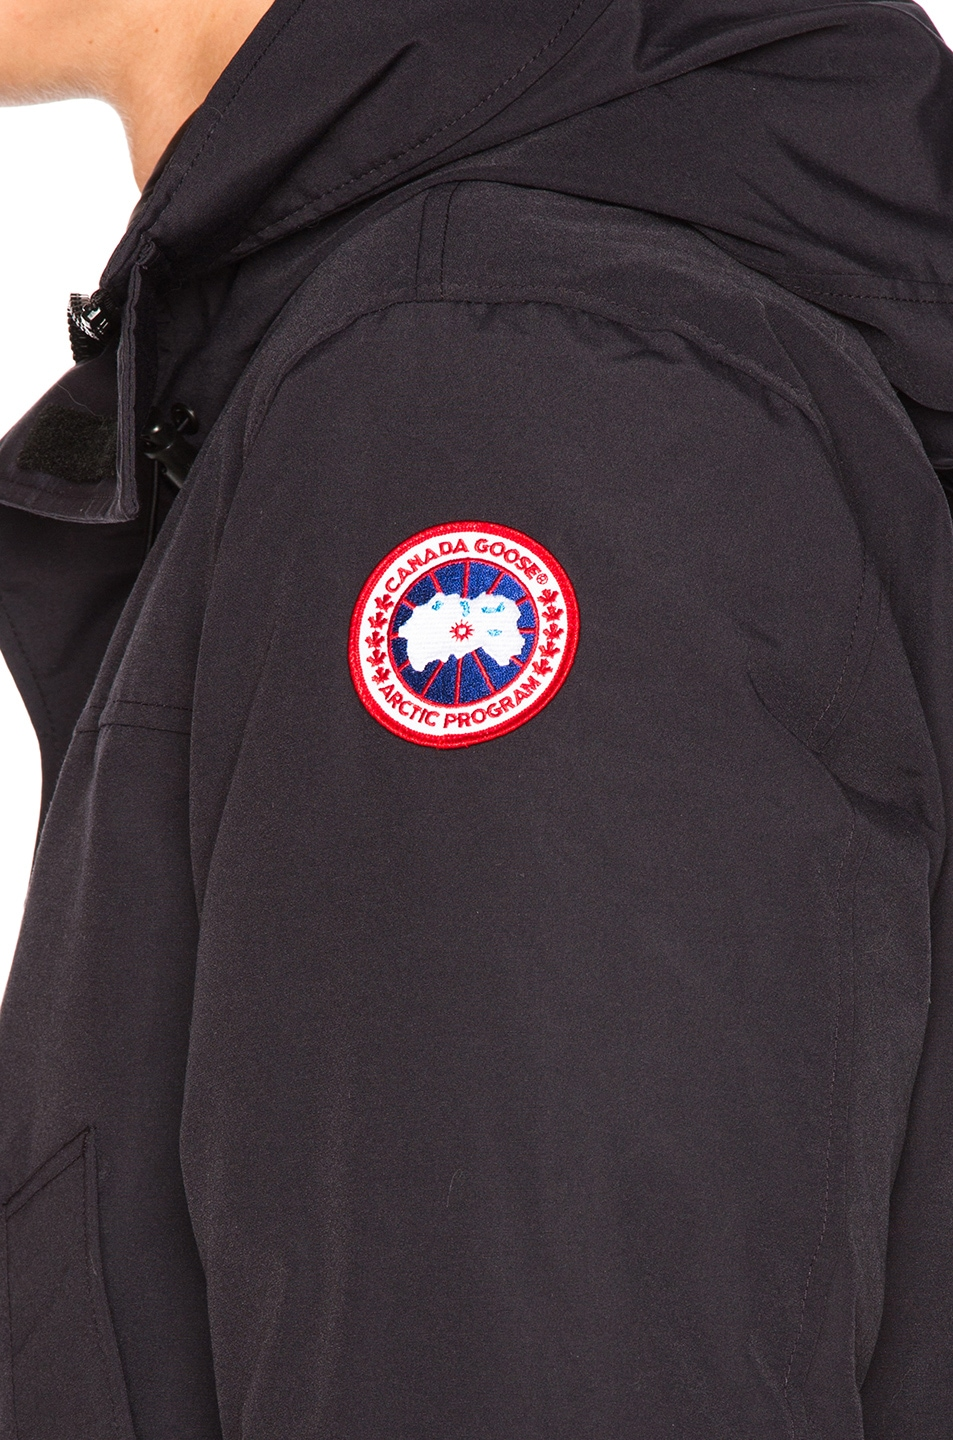 Image 8 of Canada Goose Langford Parka in Navy